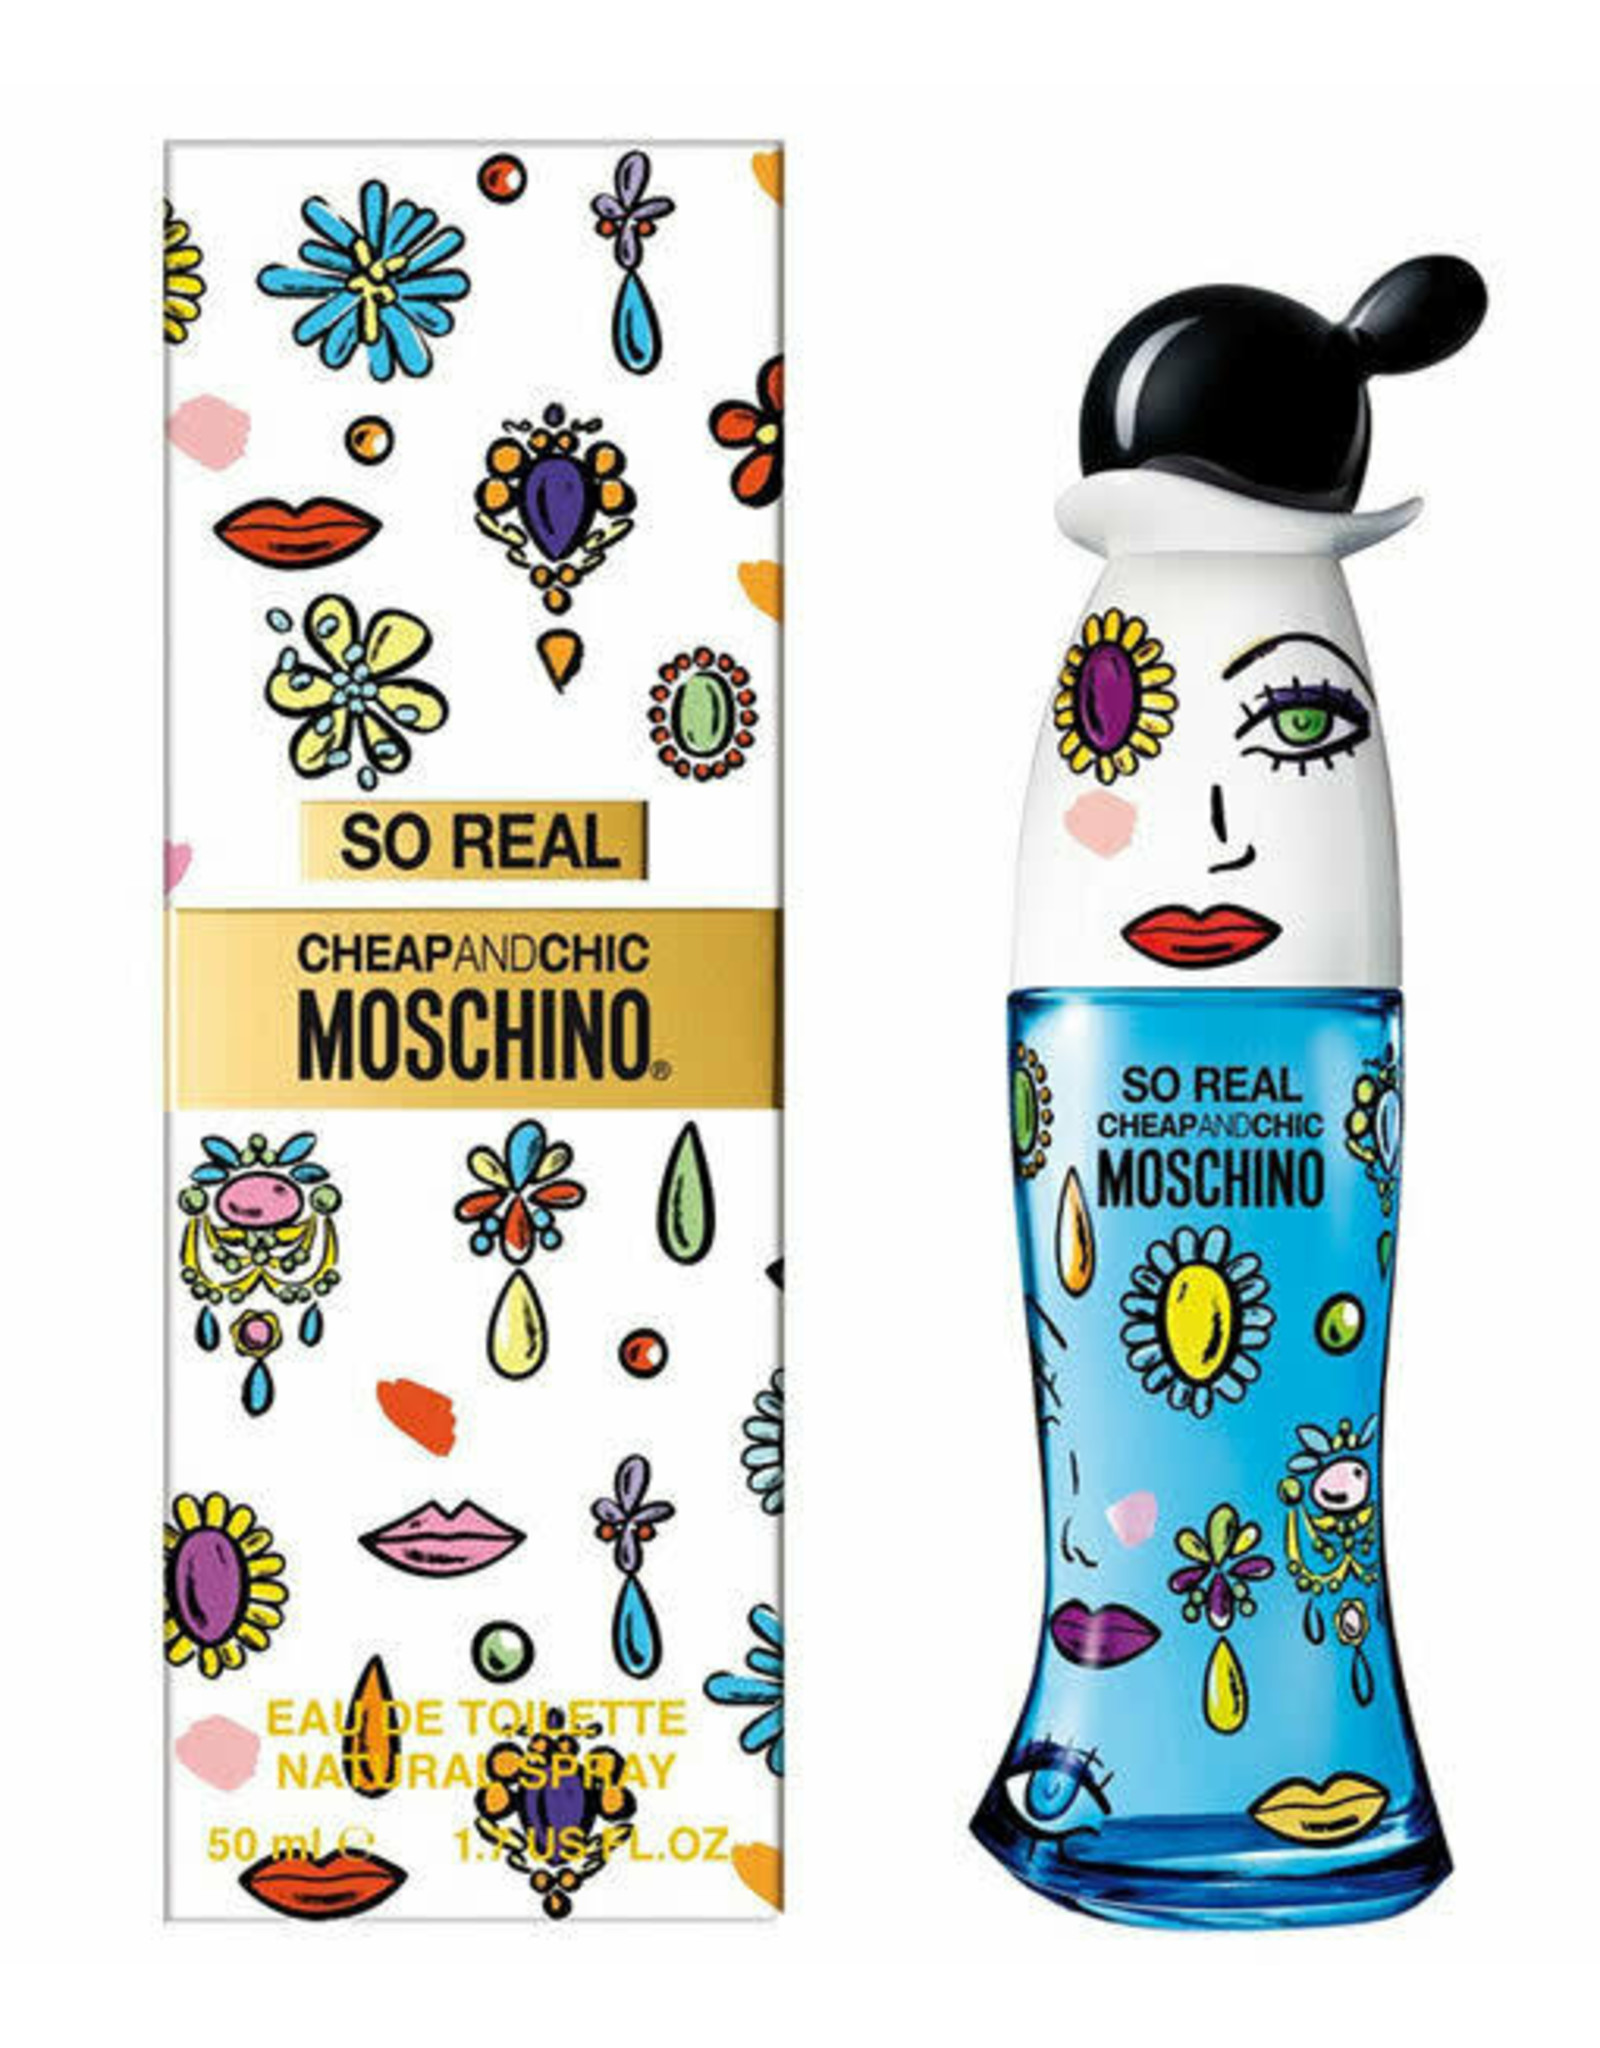 MOSCHINO MOSCHINO SO REAL CHEAP AND CHIC